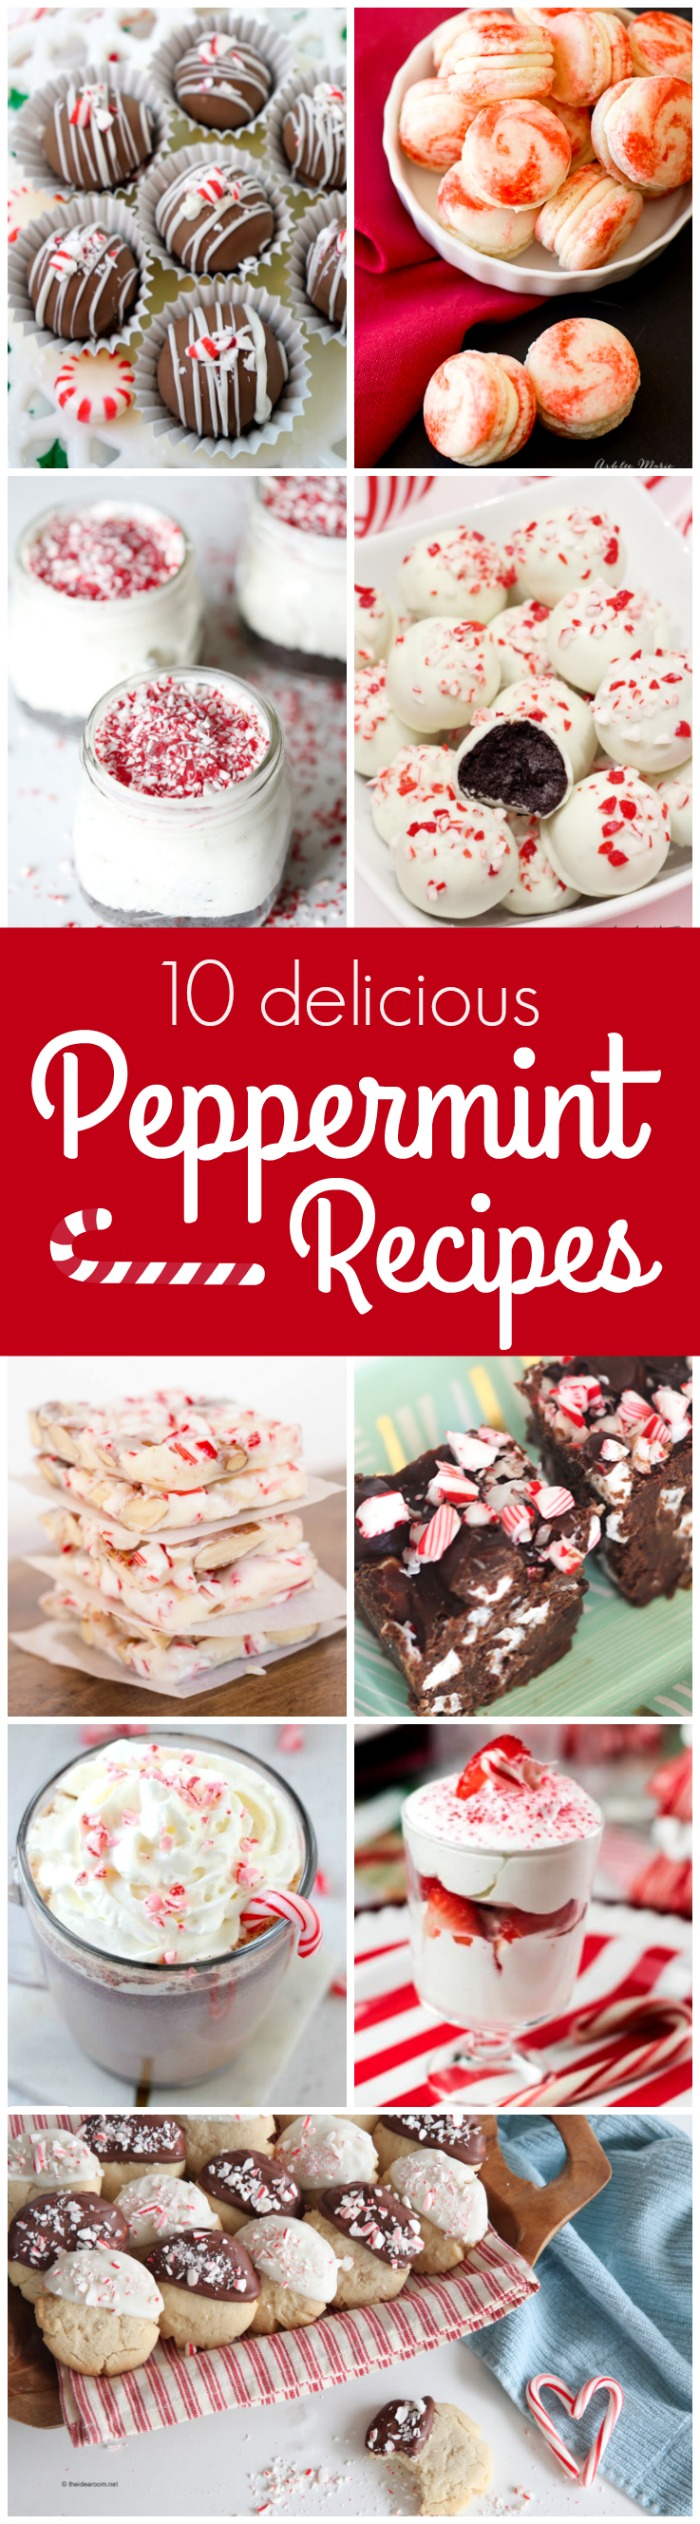 10+ Peppermint Recipes perfect for the holidays!